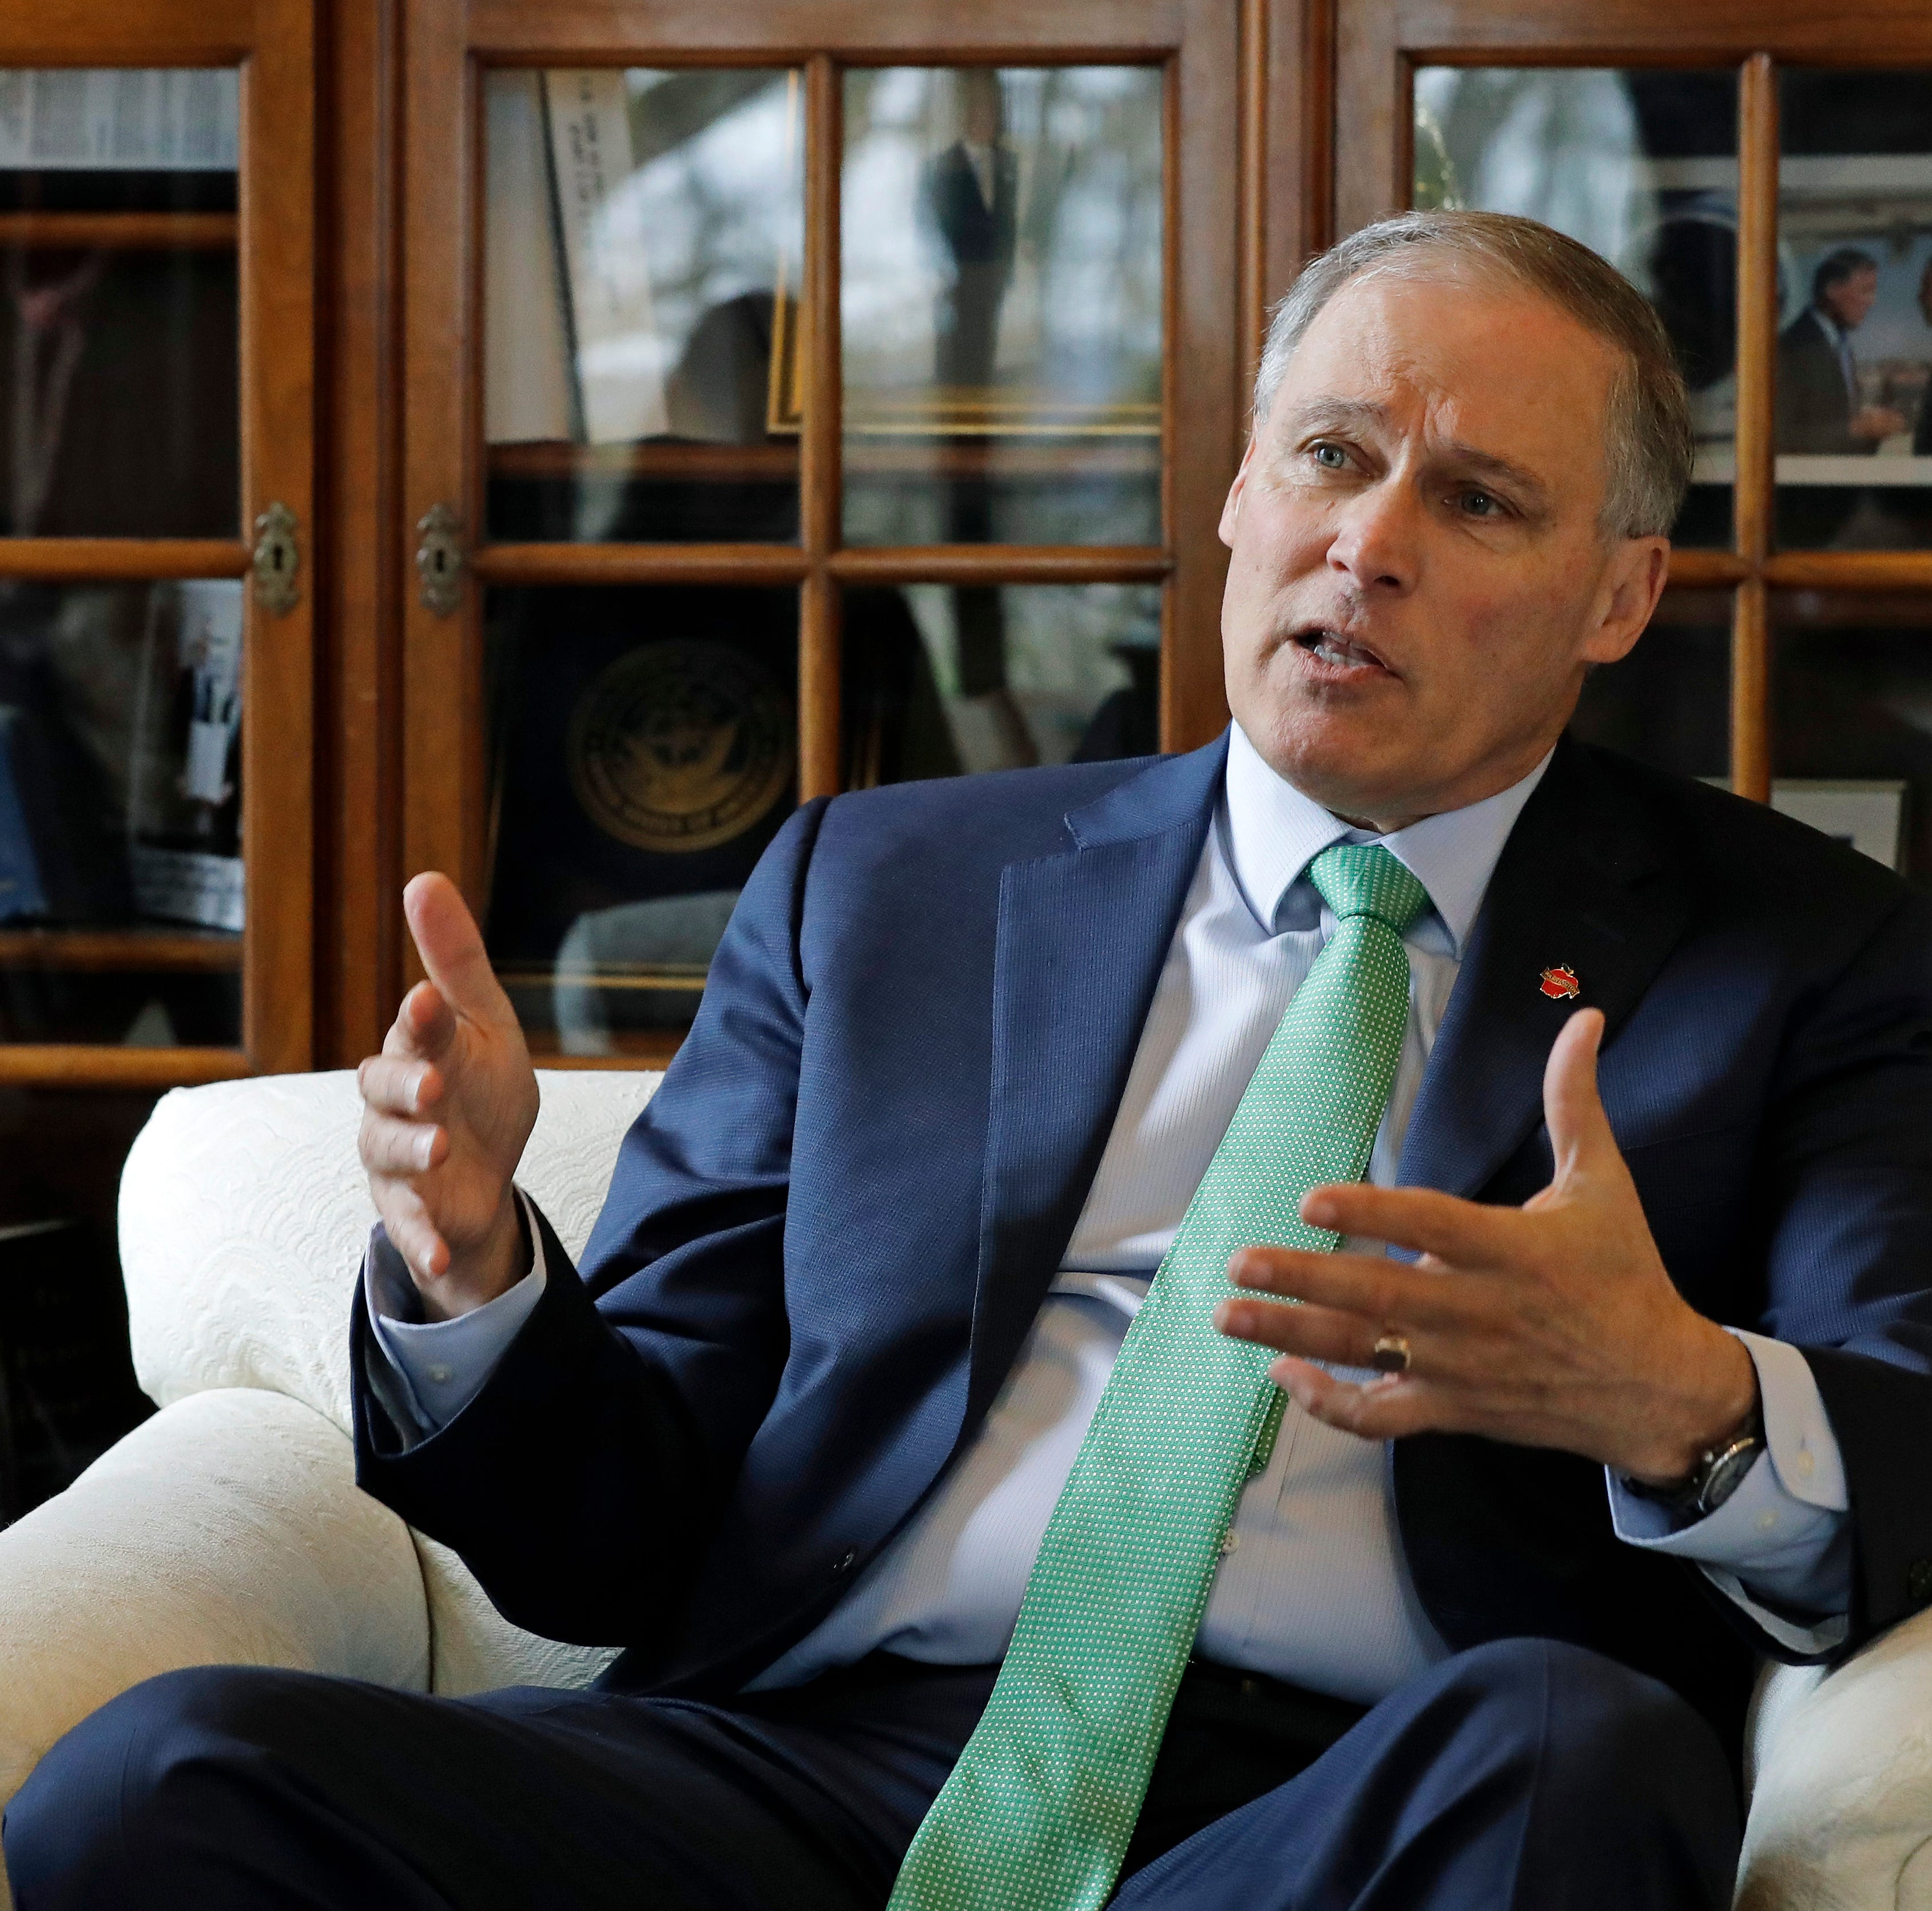 Inslee eyes national climate fight, has struggled at home